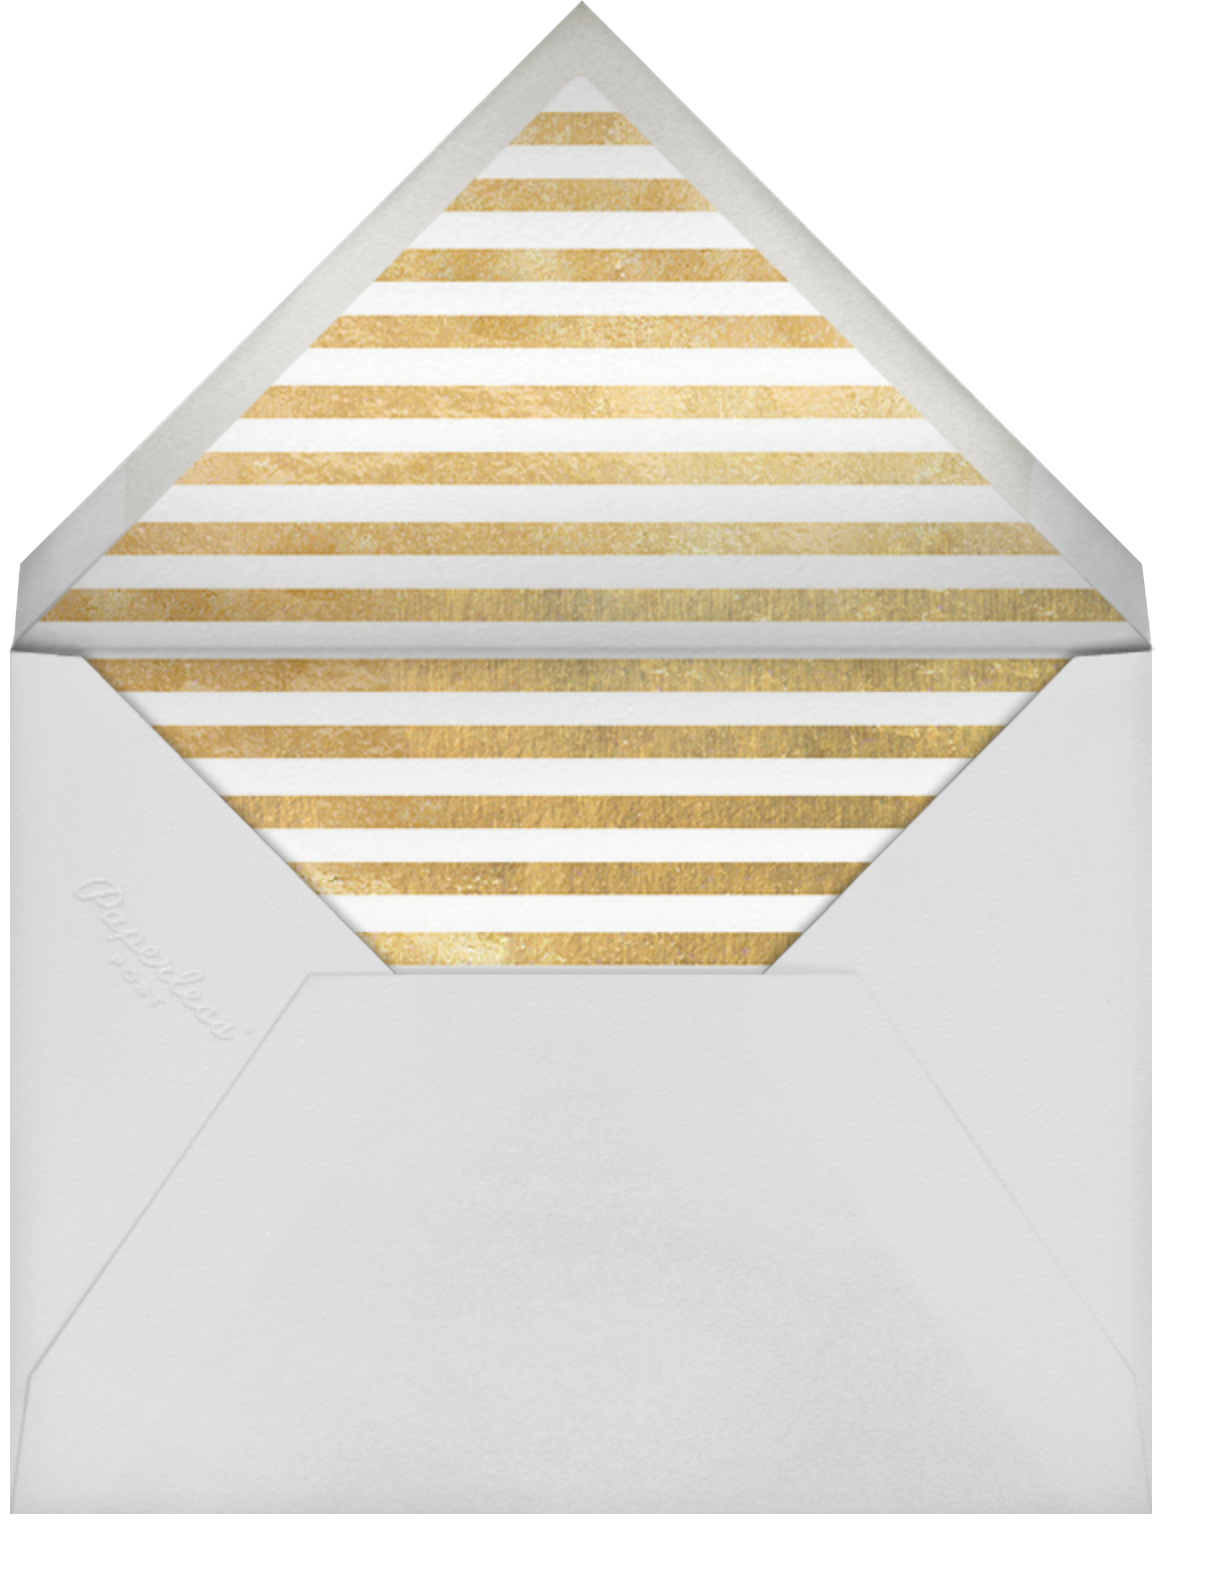 Pop Fizz Clink (Square) - White/Gold  - kate spade new york - Cocktail party - envelope back